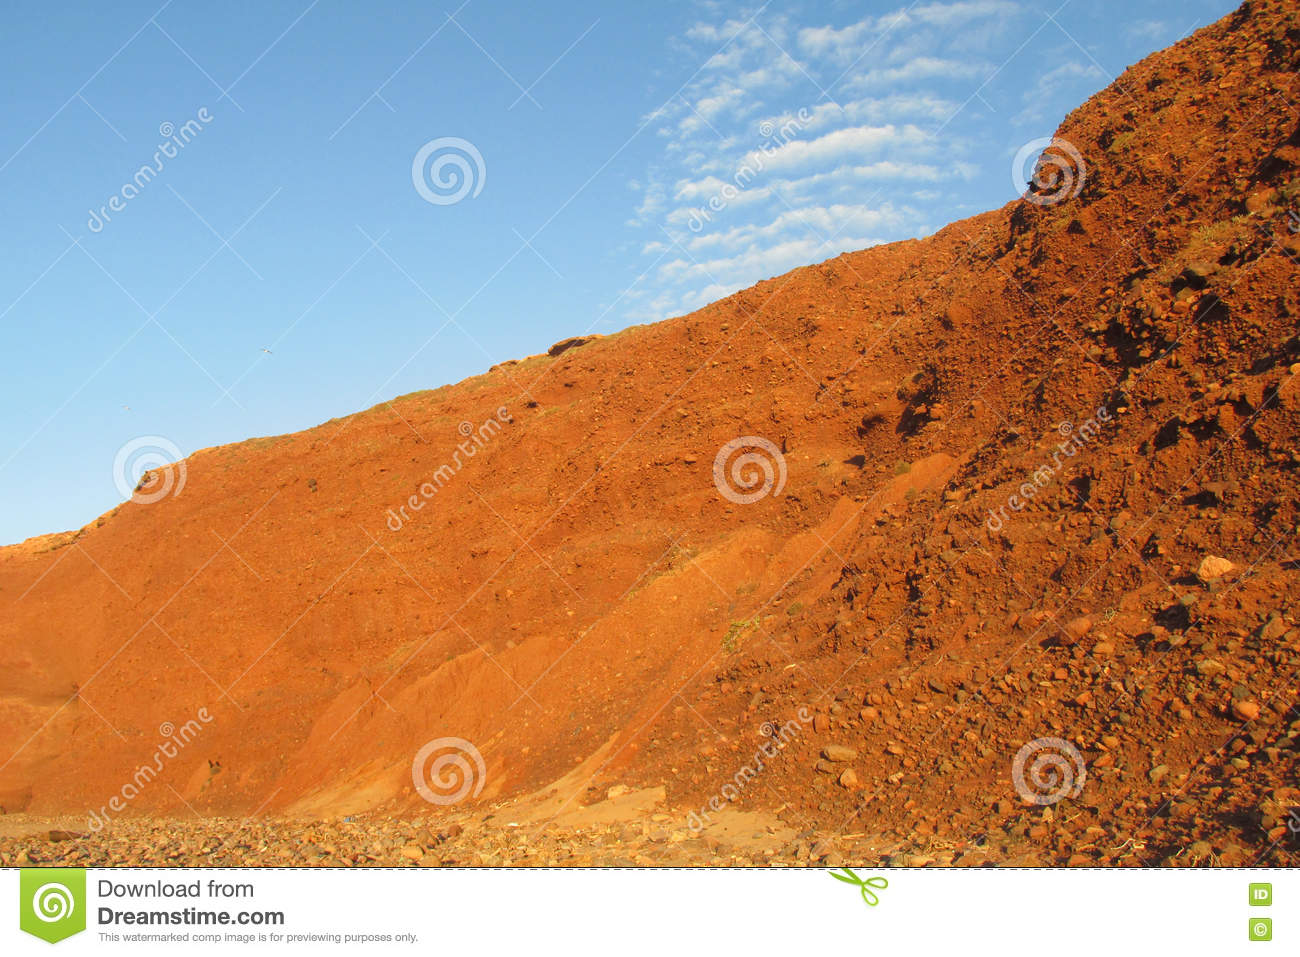 Red Rock And Mud Conglomerate Stock Image - Image of colour, orange